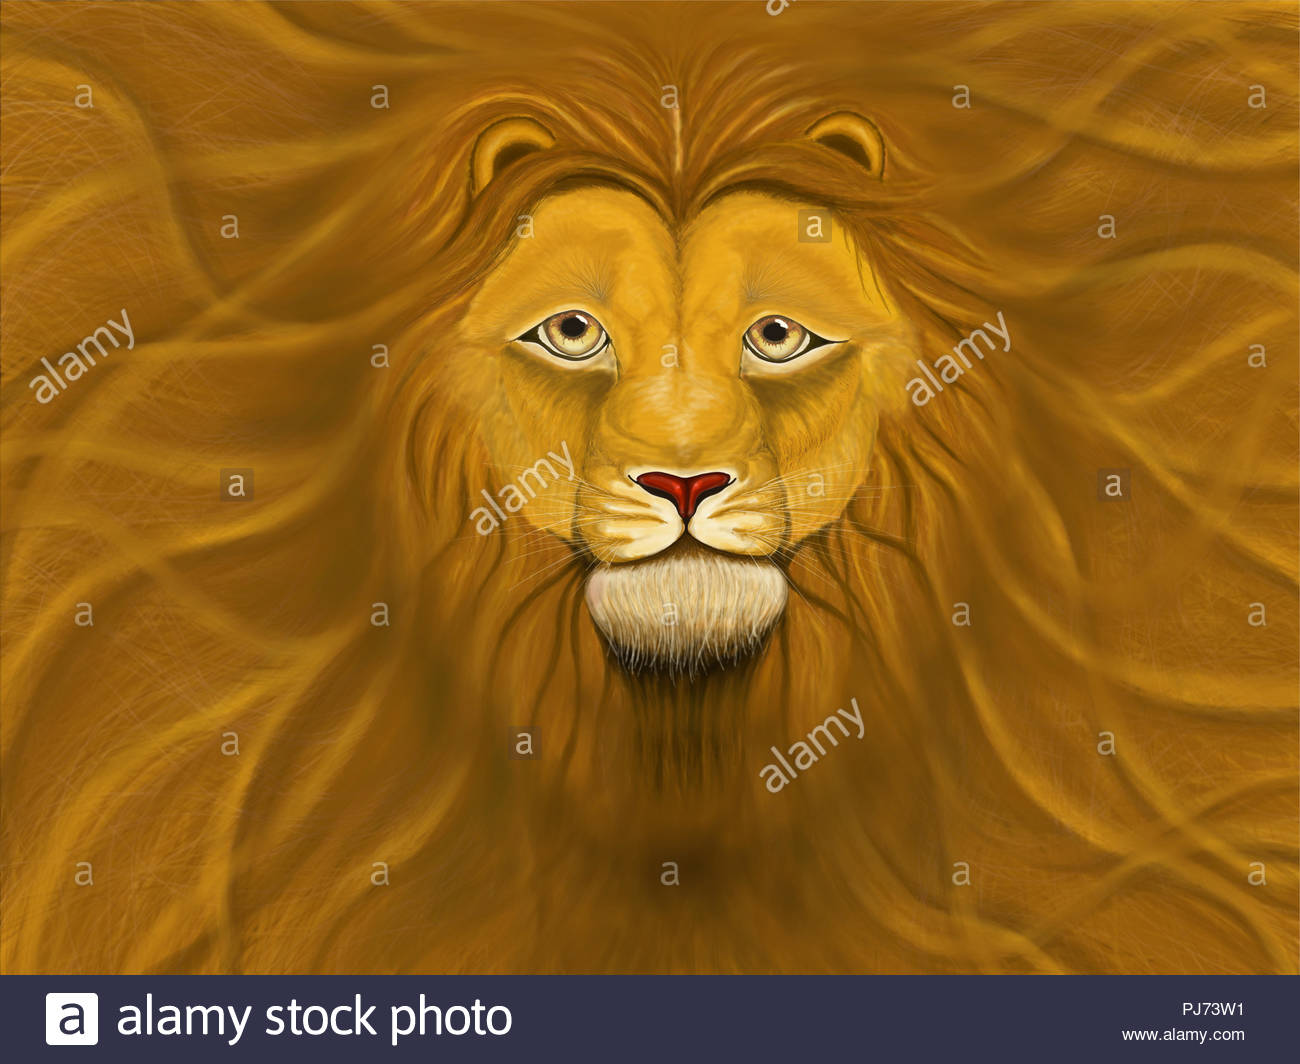 Good Lion With A Lush Mane Filling The Whole Background Stock Photo